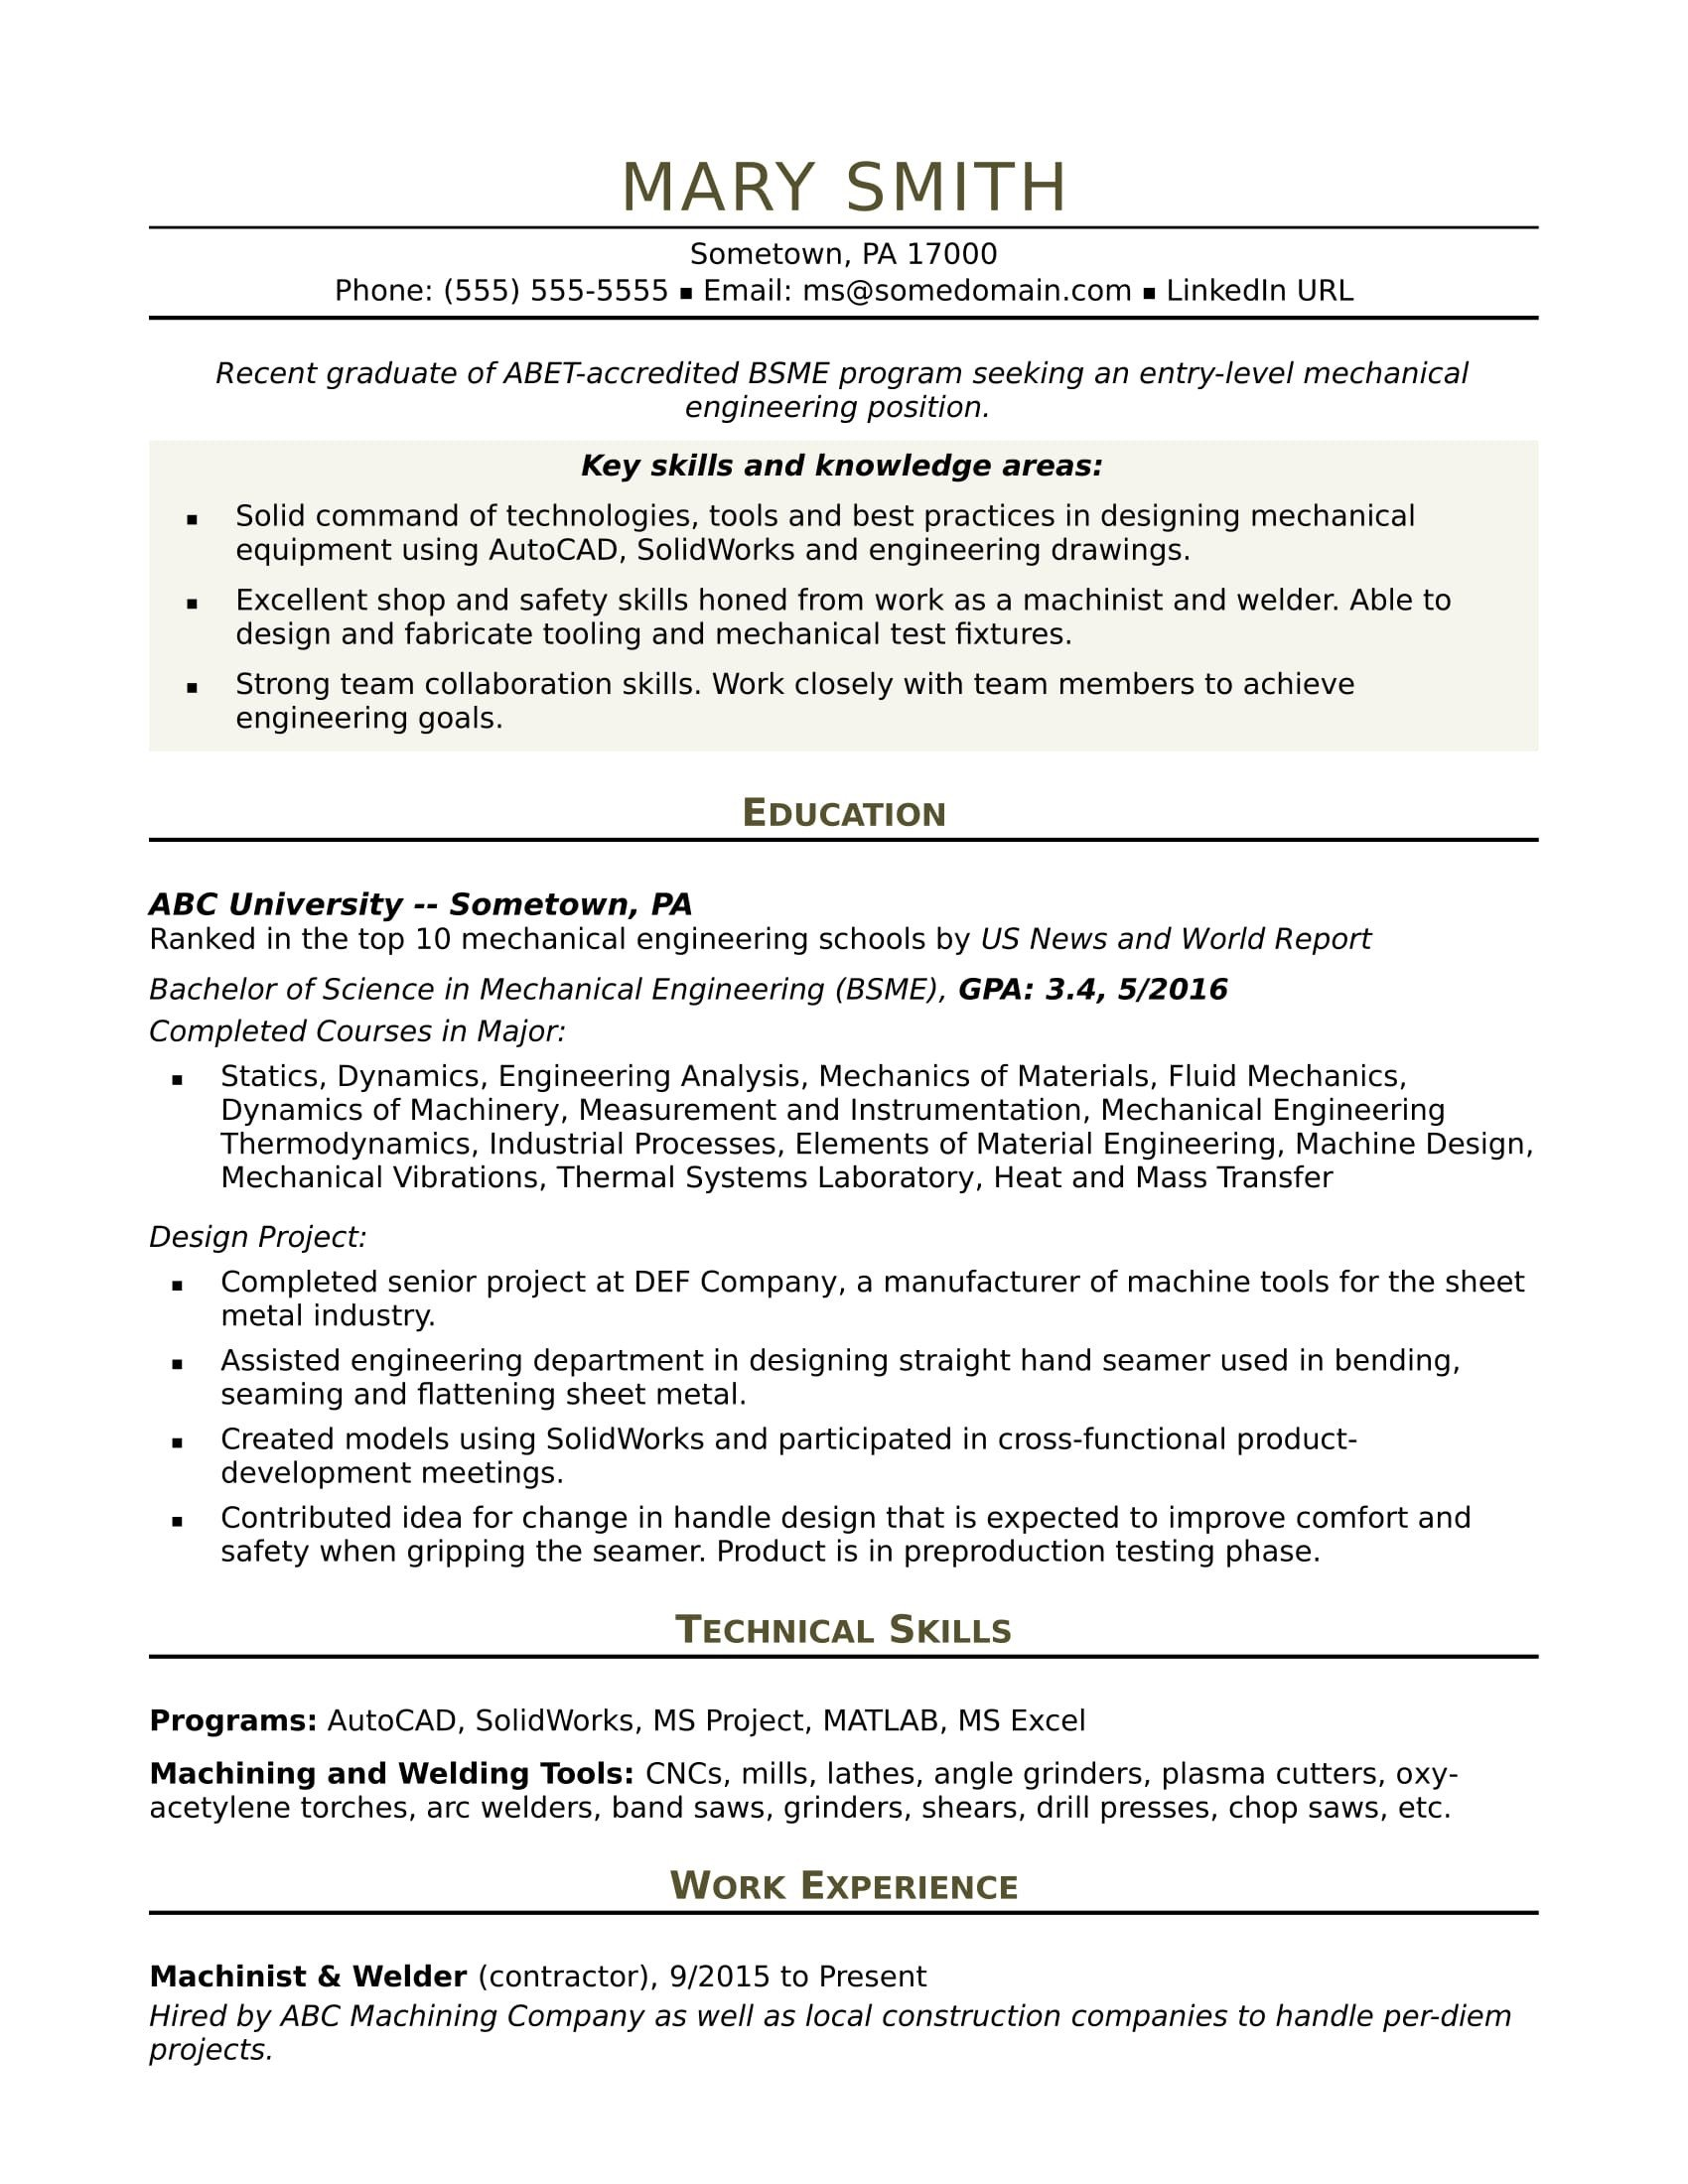 Mechanical Engineering Resume Template Sample Resume for An Entry Level Mechanical Engineer